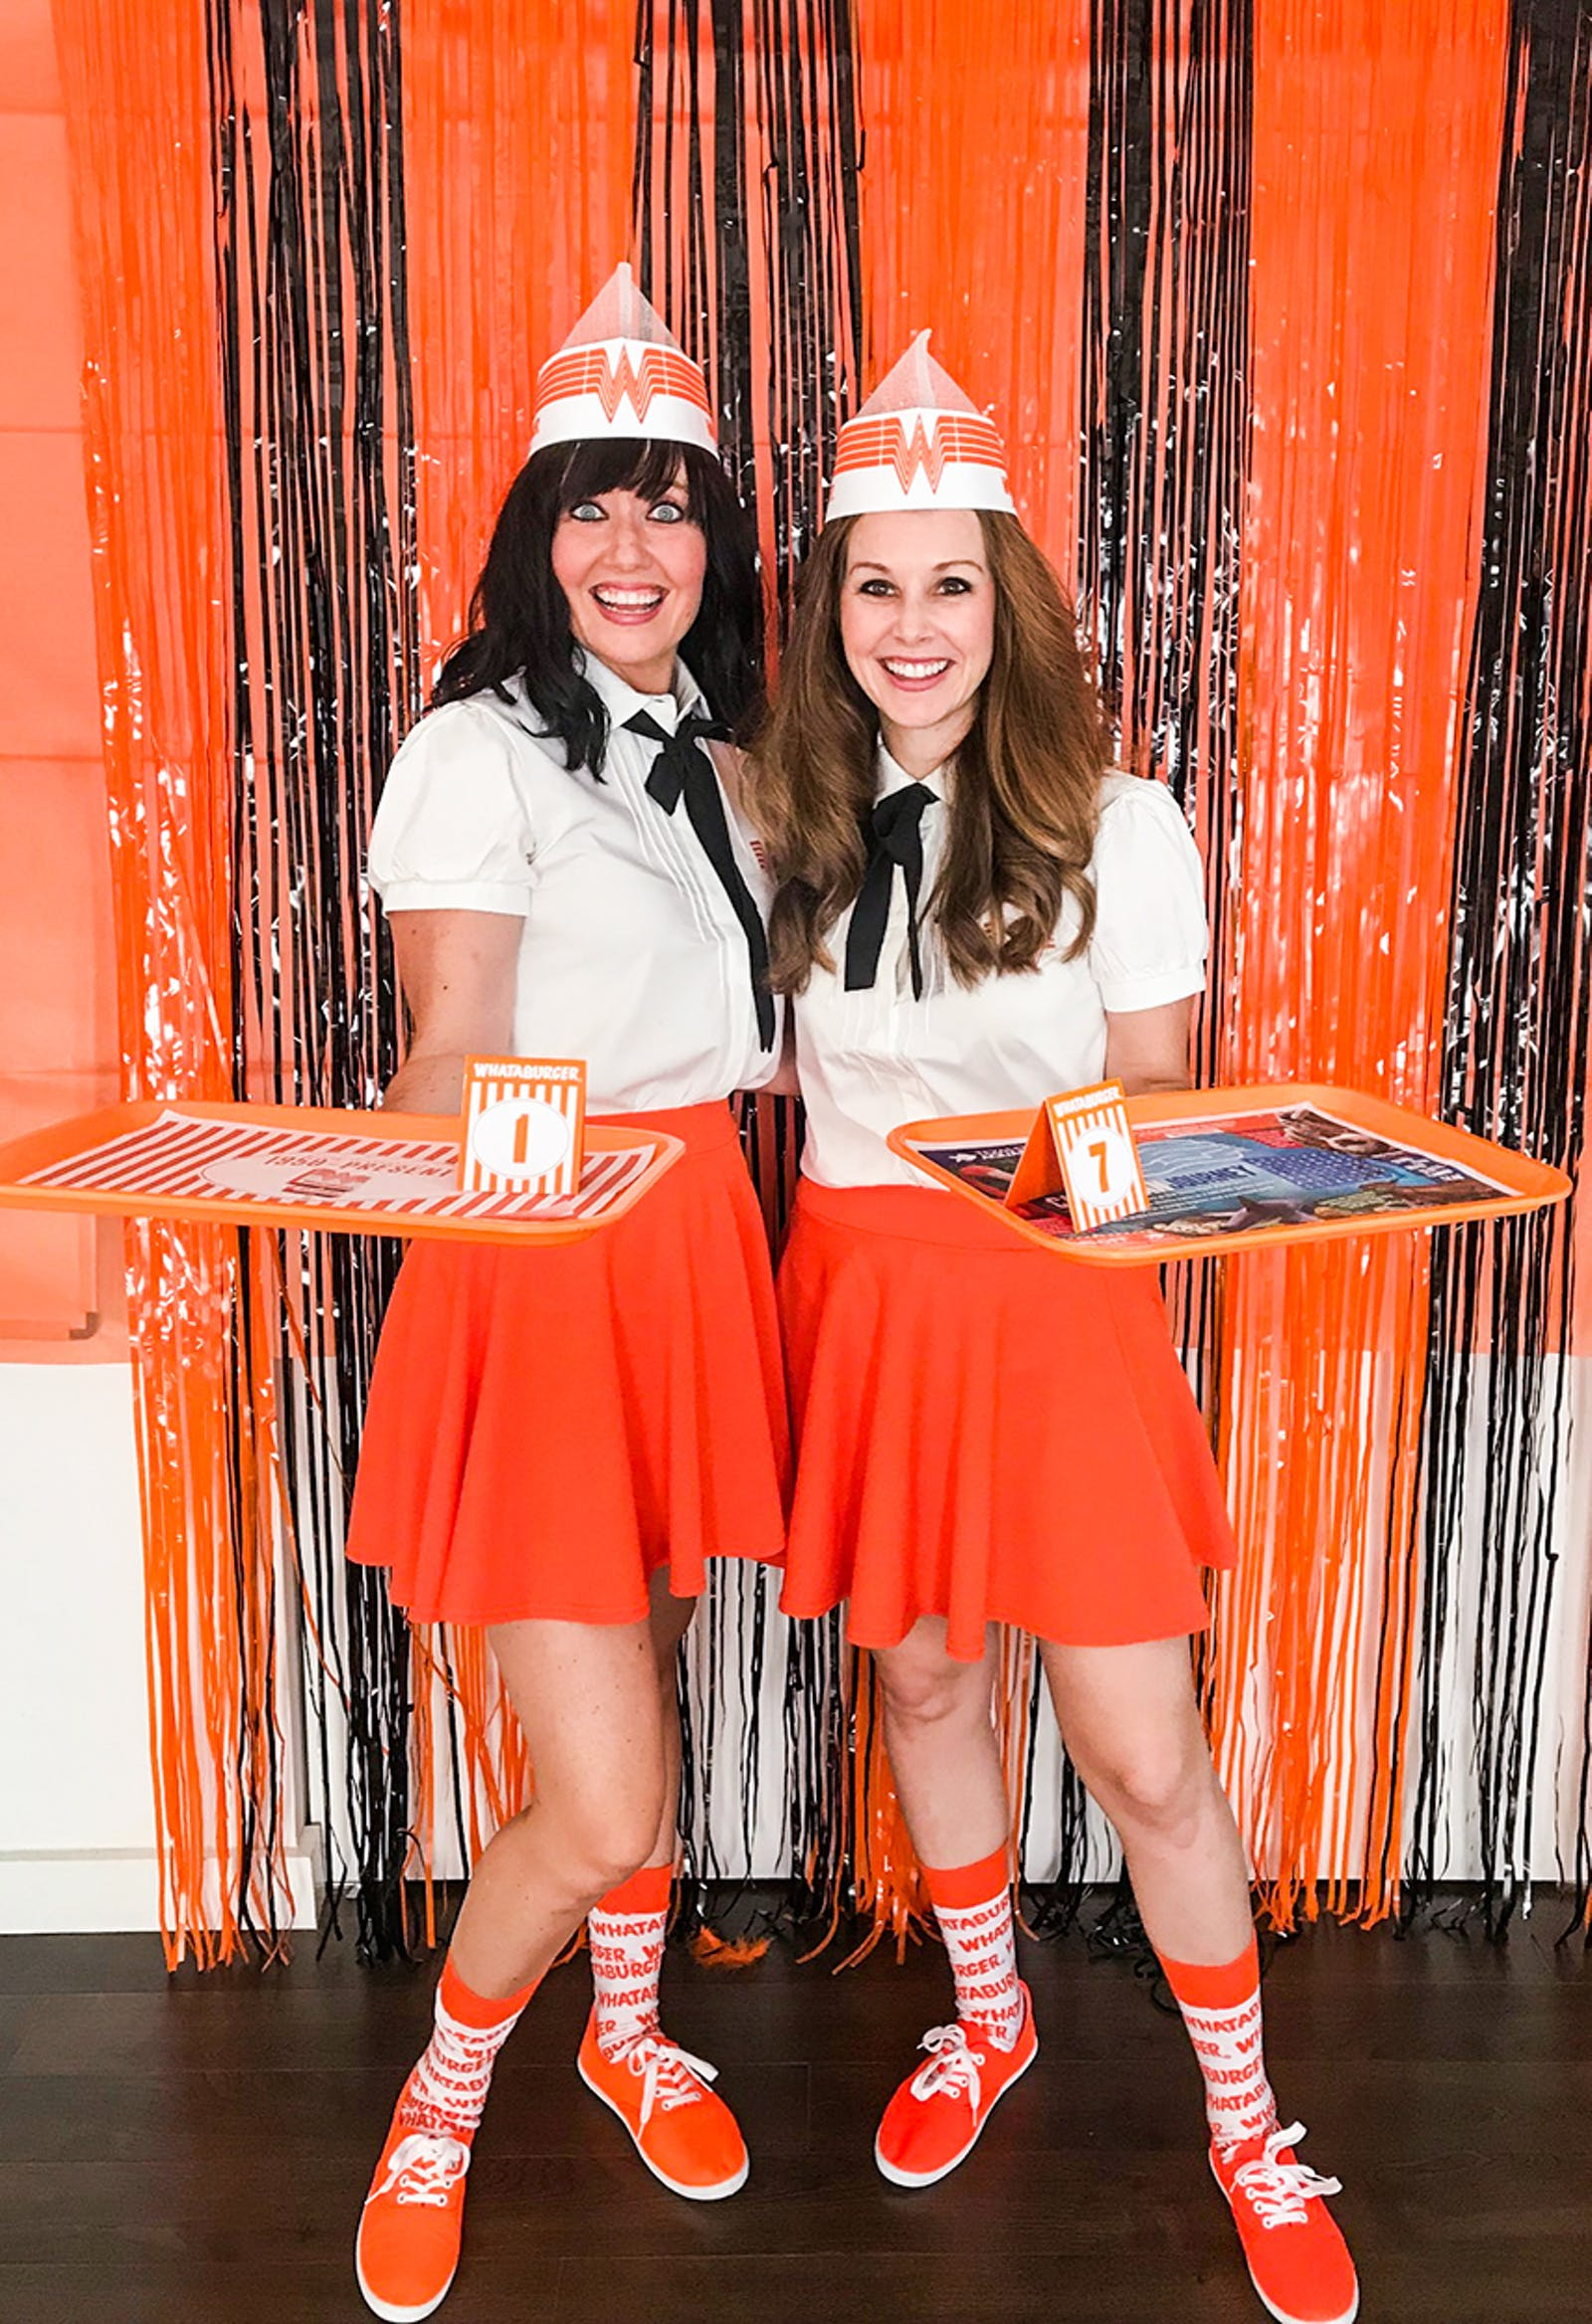 Jensen and Horner made their own matching, vintage-inspired Whataburger uniforms.